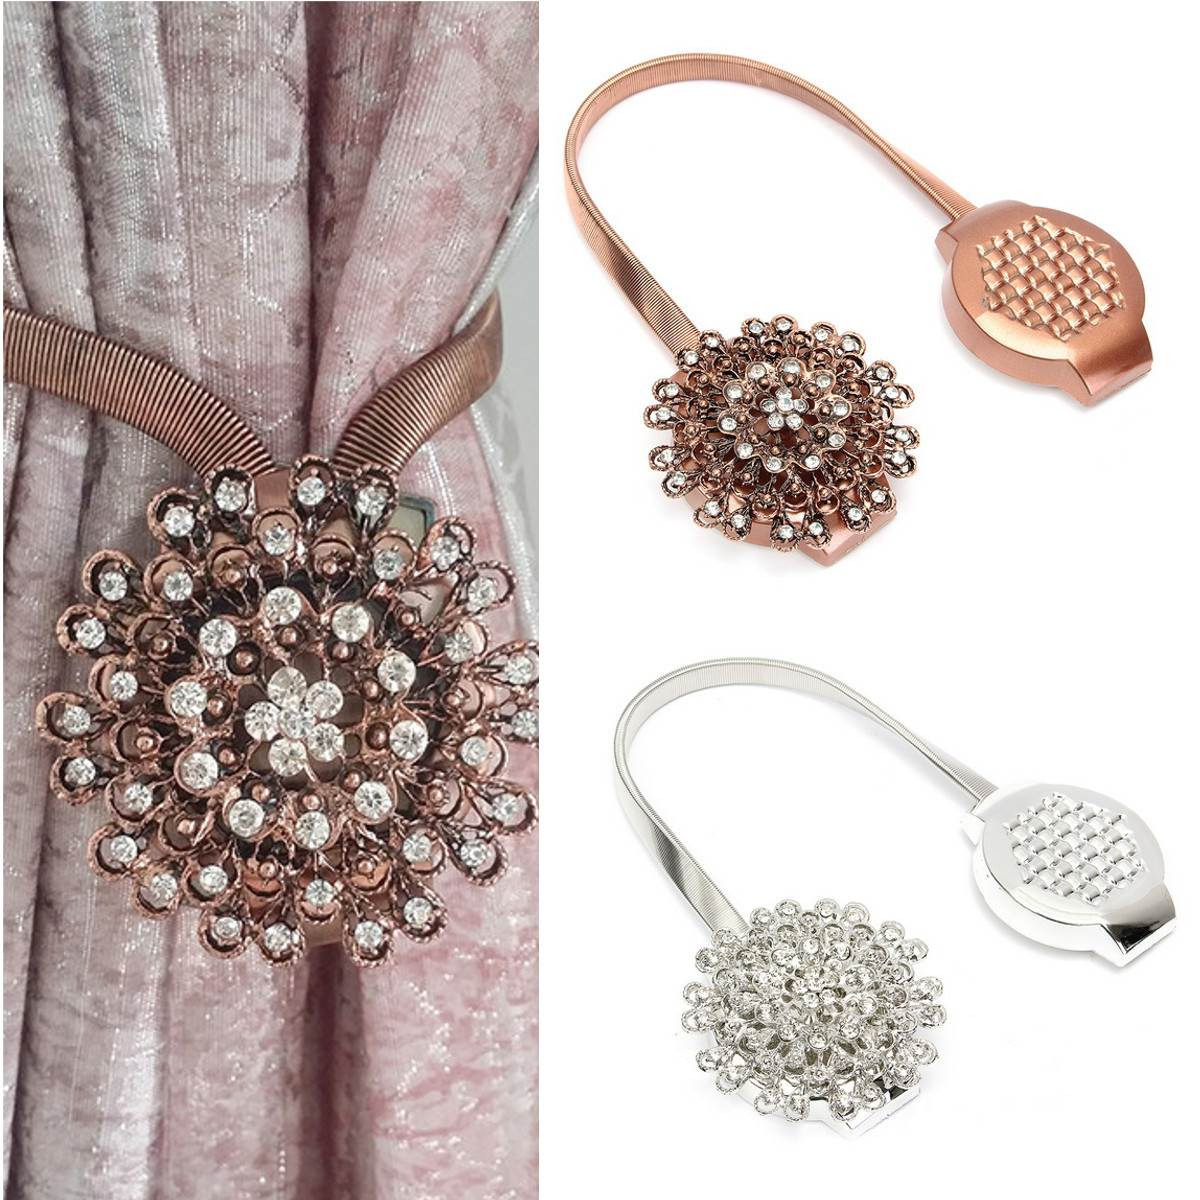 Curtain tie back clips - Magnetic Curtain Tiebacks Clips Crystal Bronze Silver Flower Spring Holdbacks Curtain Buckles Curtain Accessories China